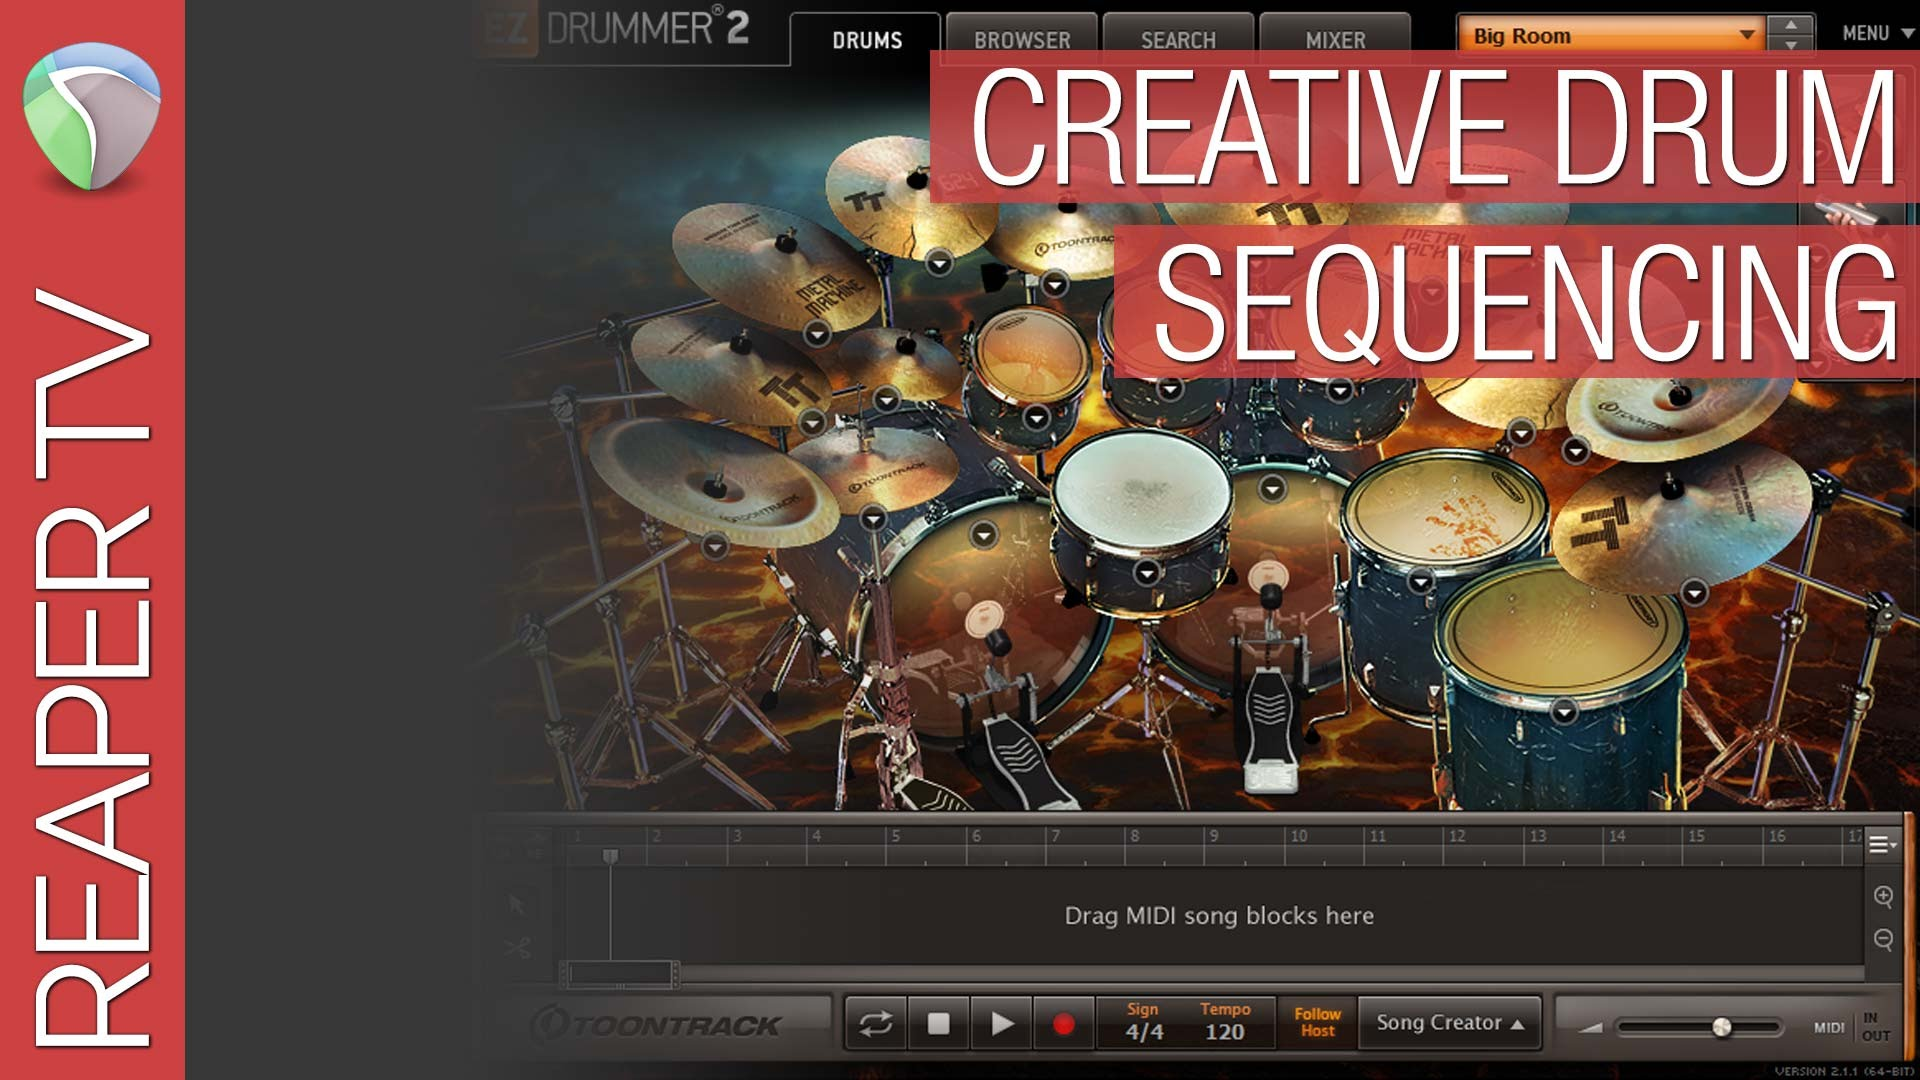 Creative Drum Sequencing with EZ Drummer 2 & Reaper 5